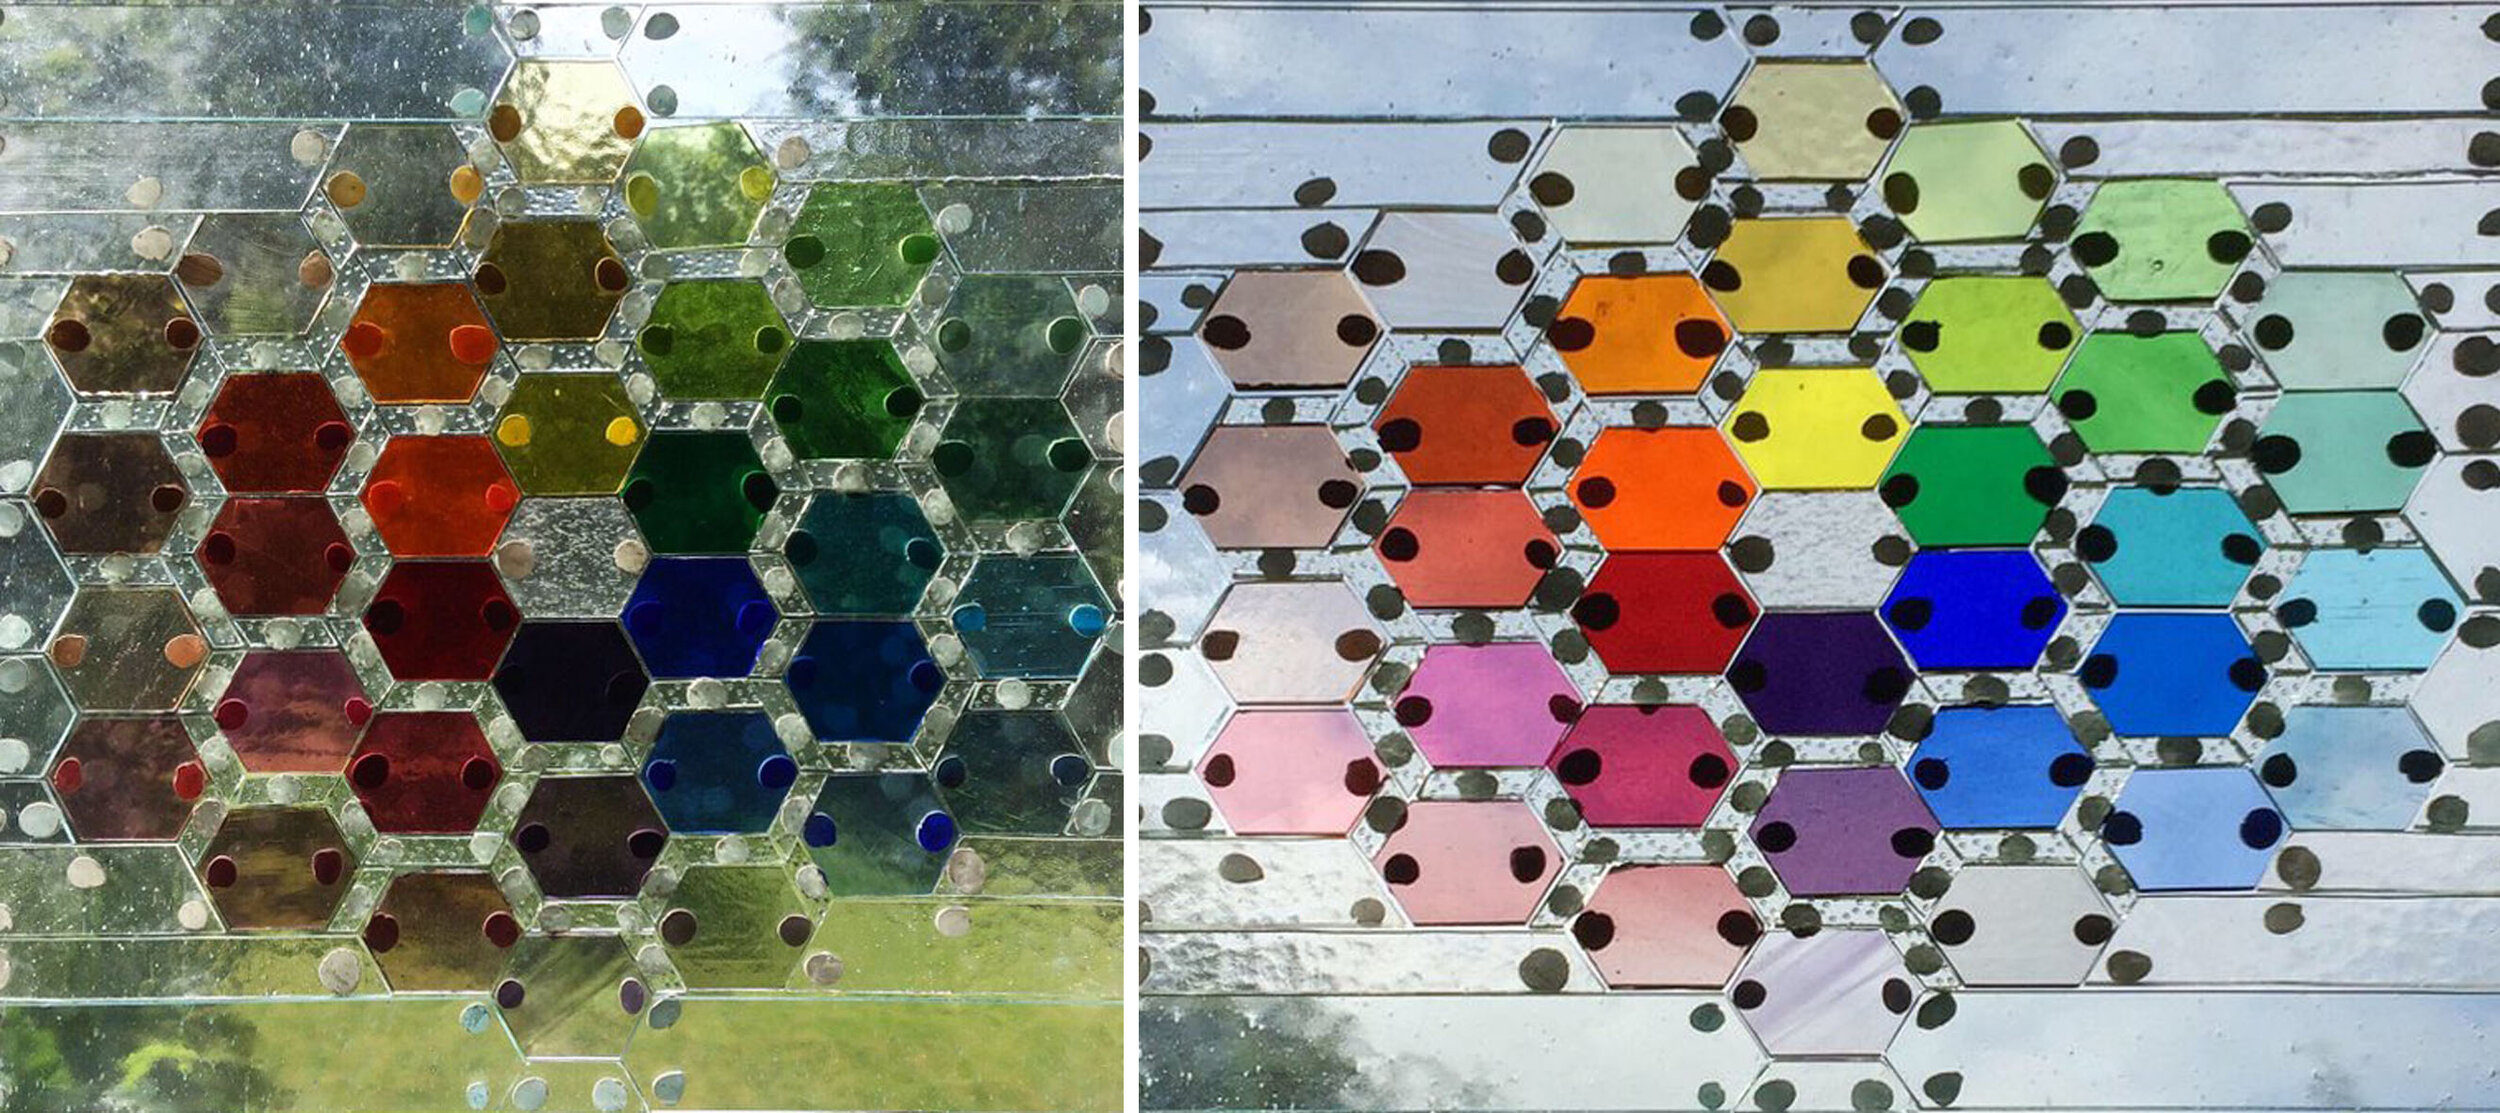 Left, pieces shown against a garden background. Right, pieces shown against a sky background.